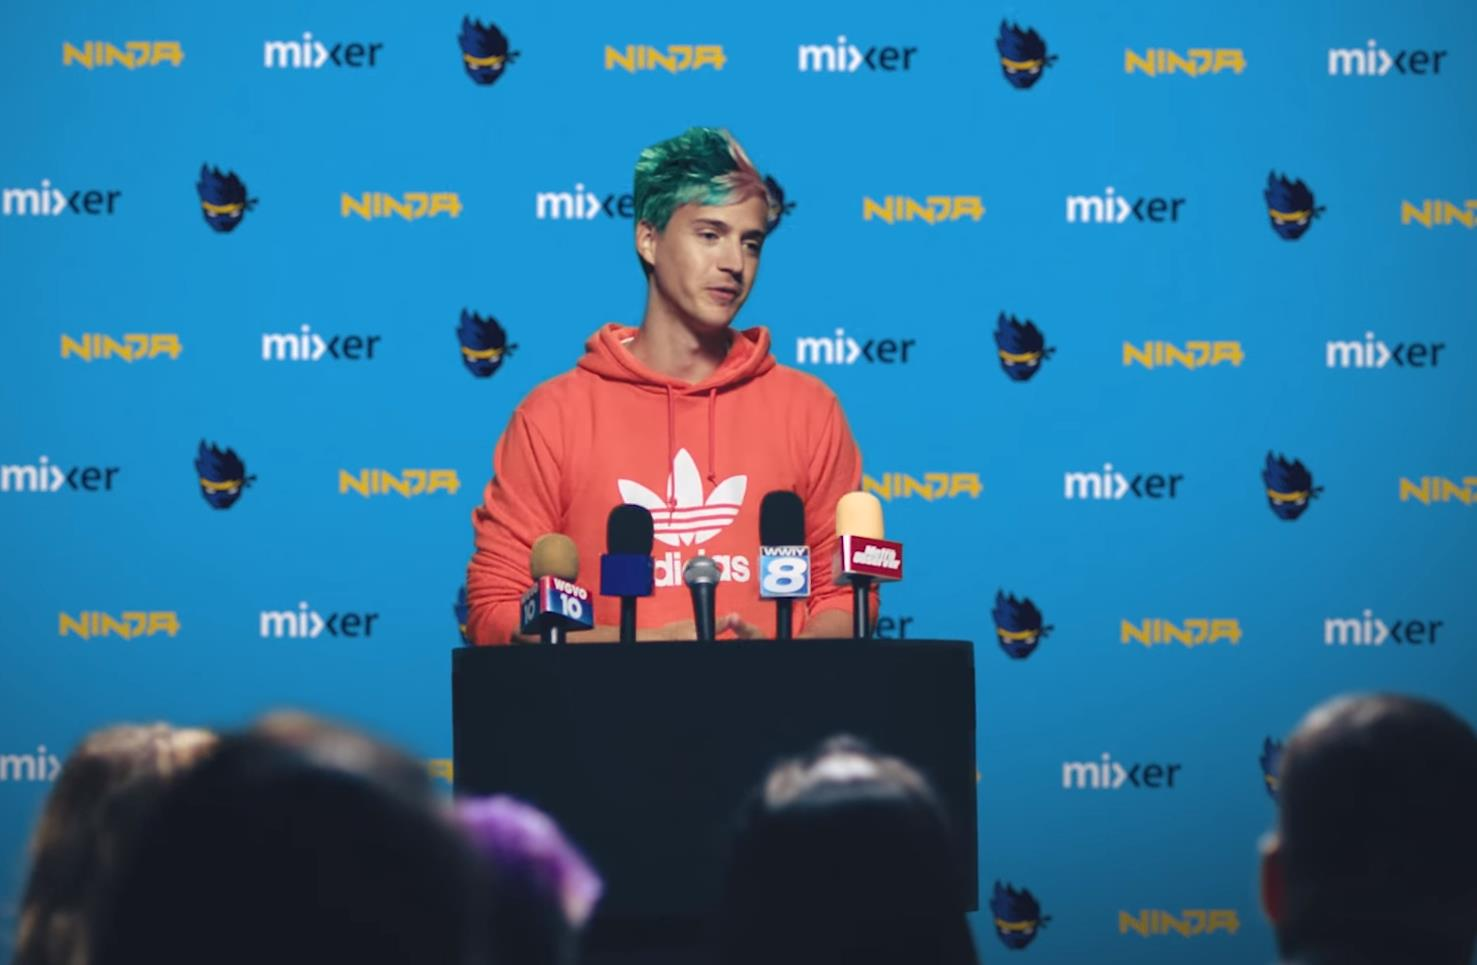 Ninja's Move to Mixer Resulted in 500k Subscribers, Increase in App Downloads